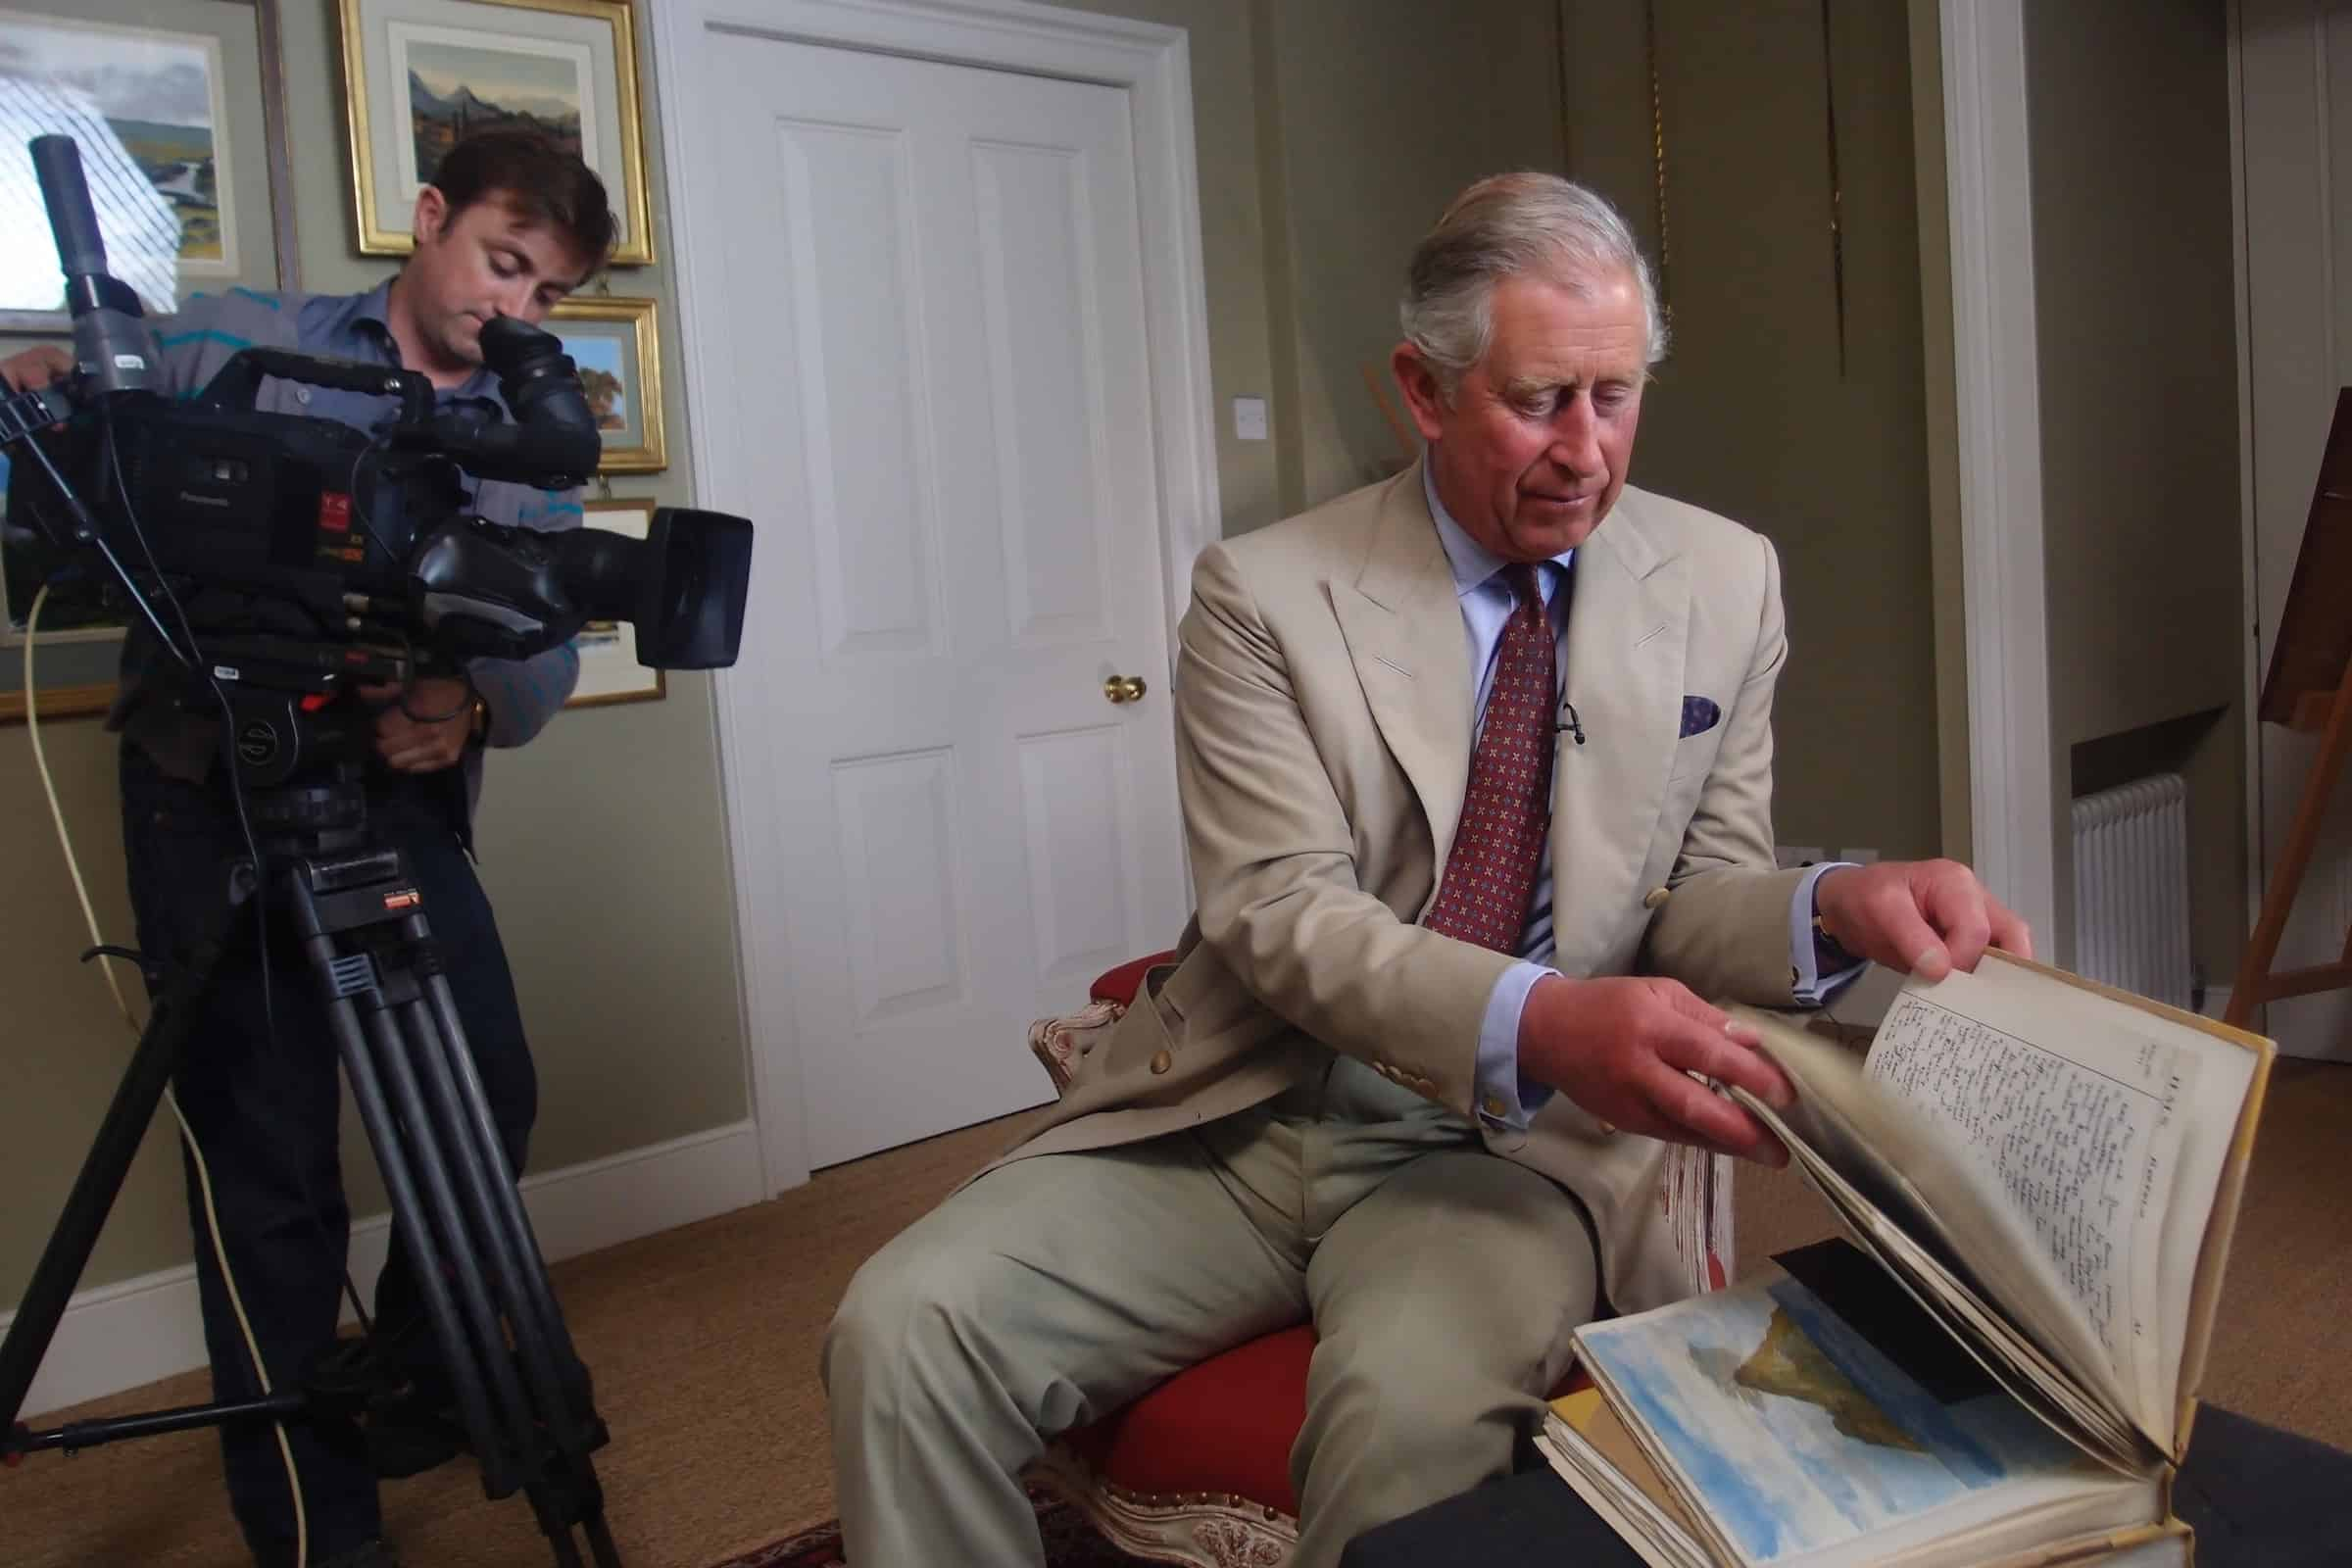 HRH The Prince of Wales looking through his naval notebook during the filming of Royal Paintbox